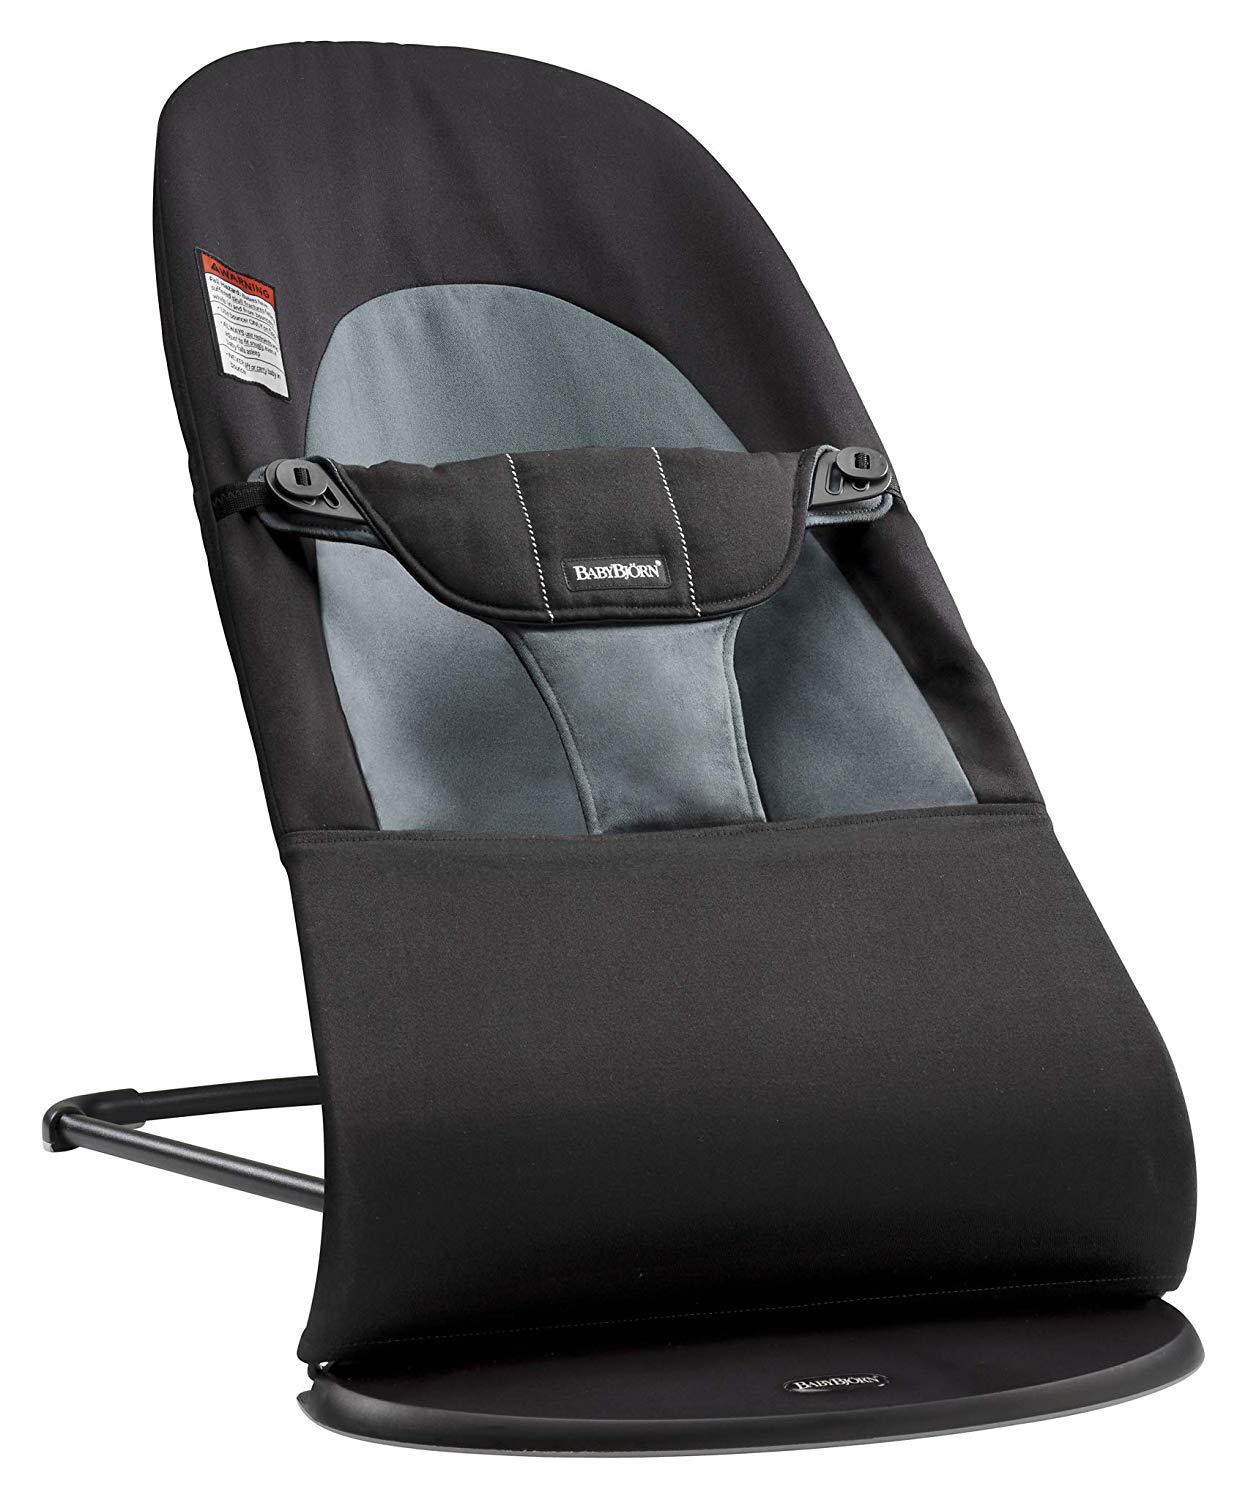 Review of BABYBJORN Bouncer Balance Soft, Cotton, Black/Dark Gray